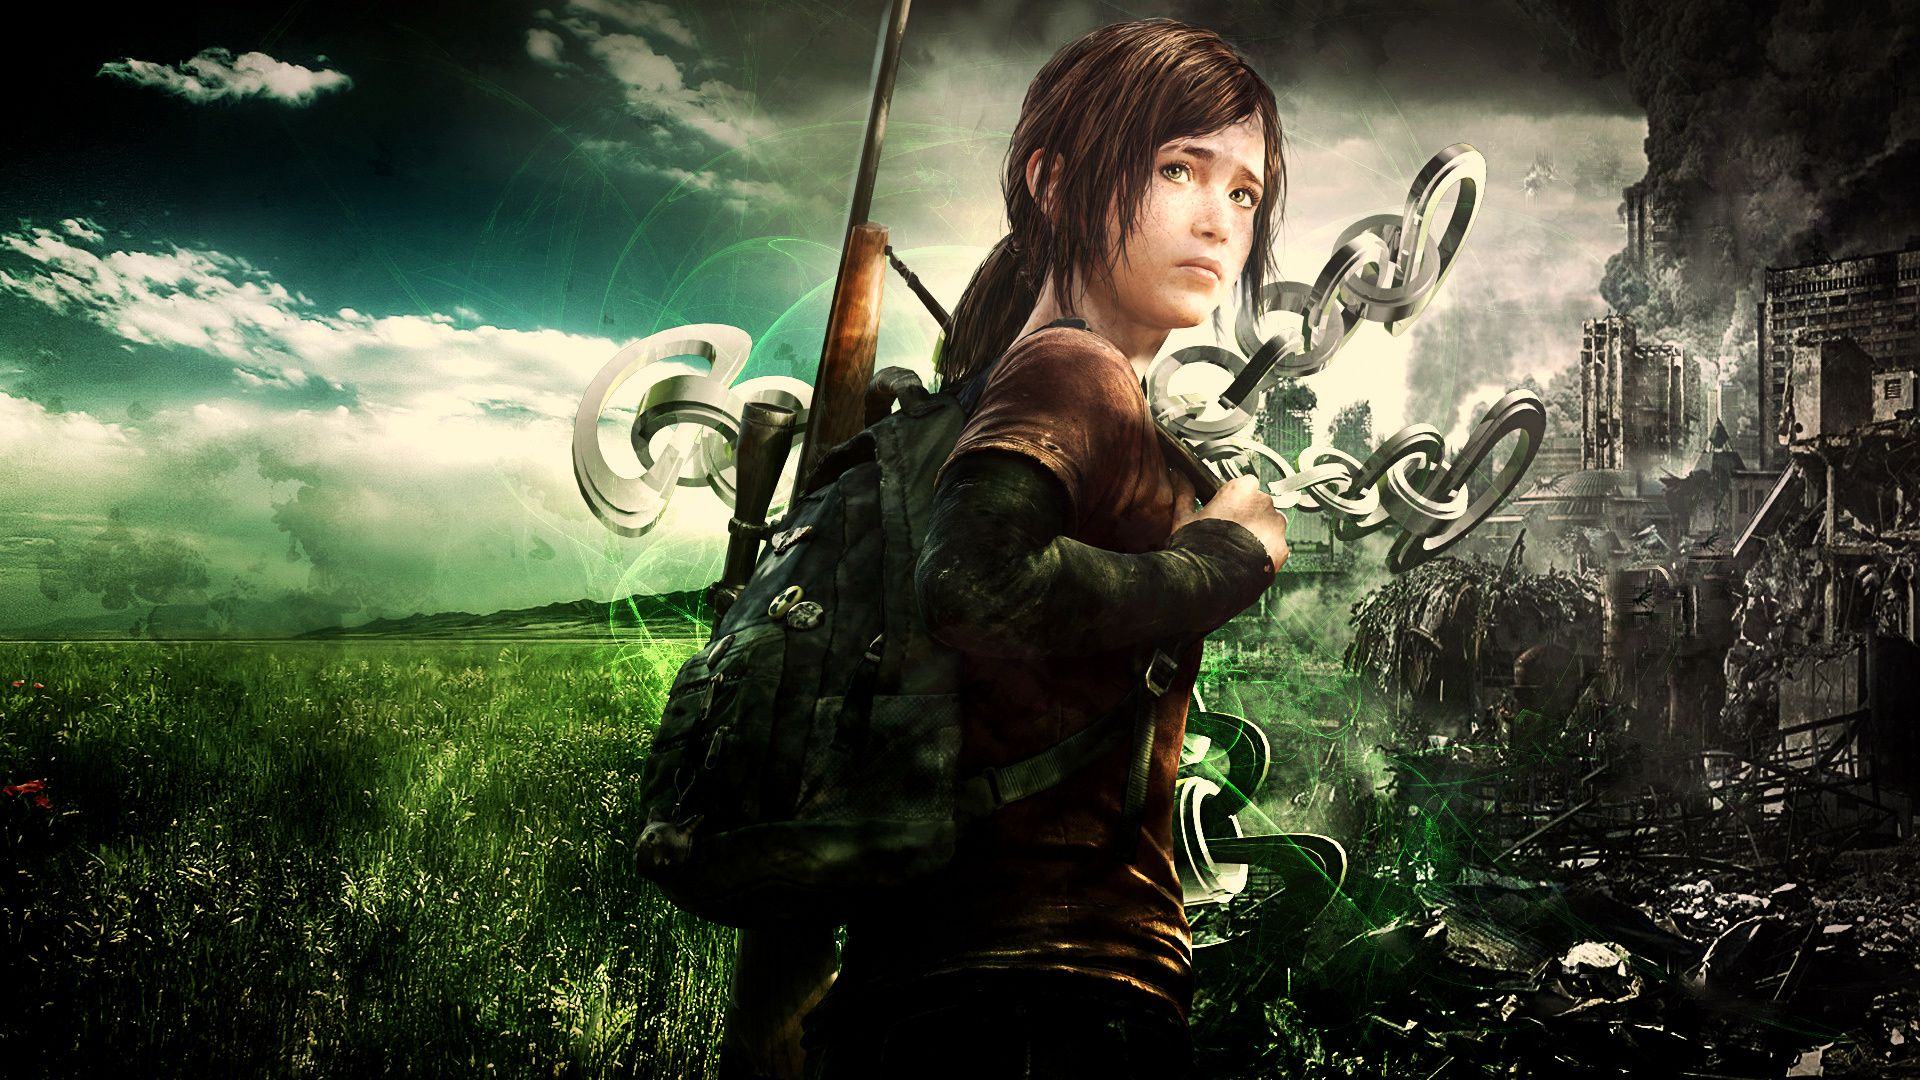 82 The Last Of Us Wallpapers The Last Of Us Backgrounds The Last Of Us Girl Wallpaper Abstract Wallpaper